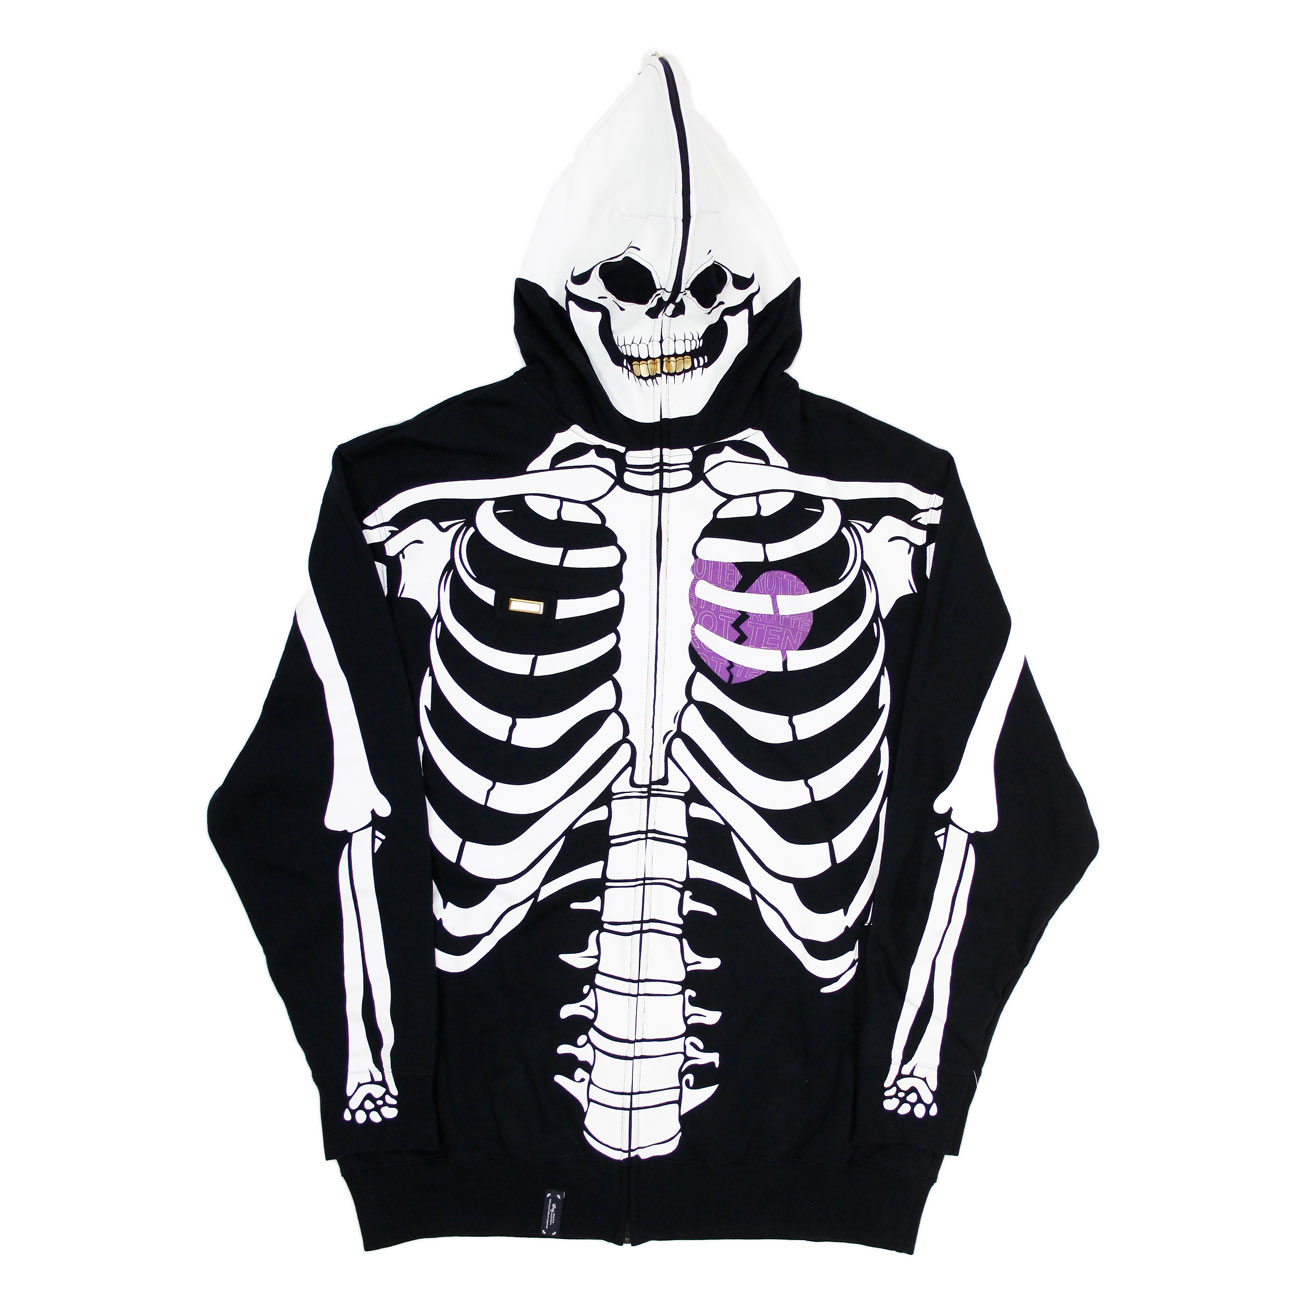 Lrg Dead Serious Skeleton Hoodie 2006 From The Vaults